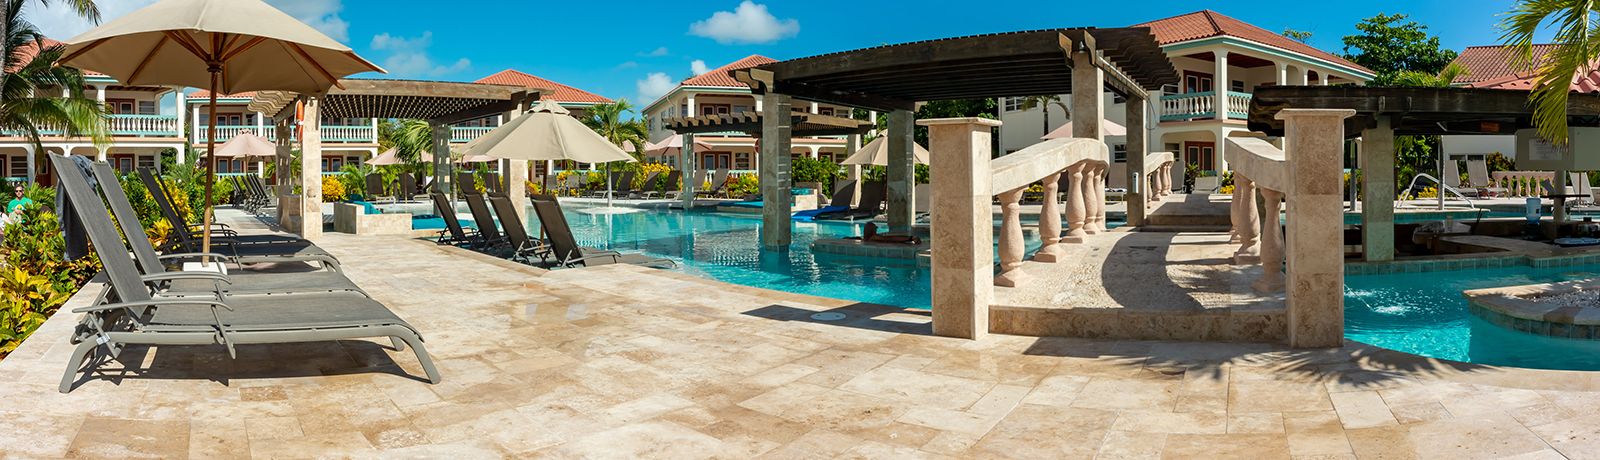 Belizean-Shores-Resort-Pool